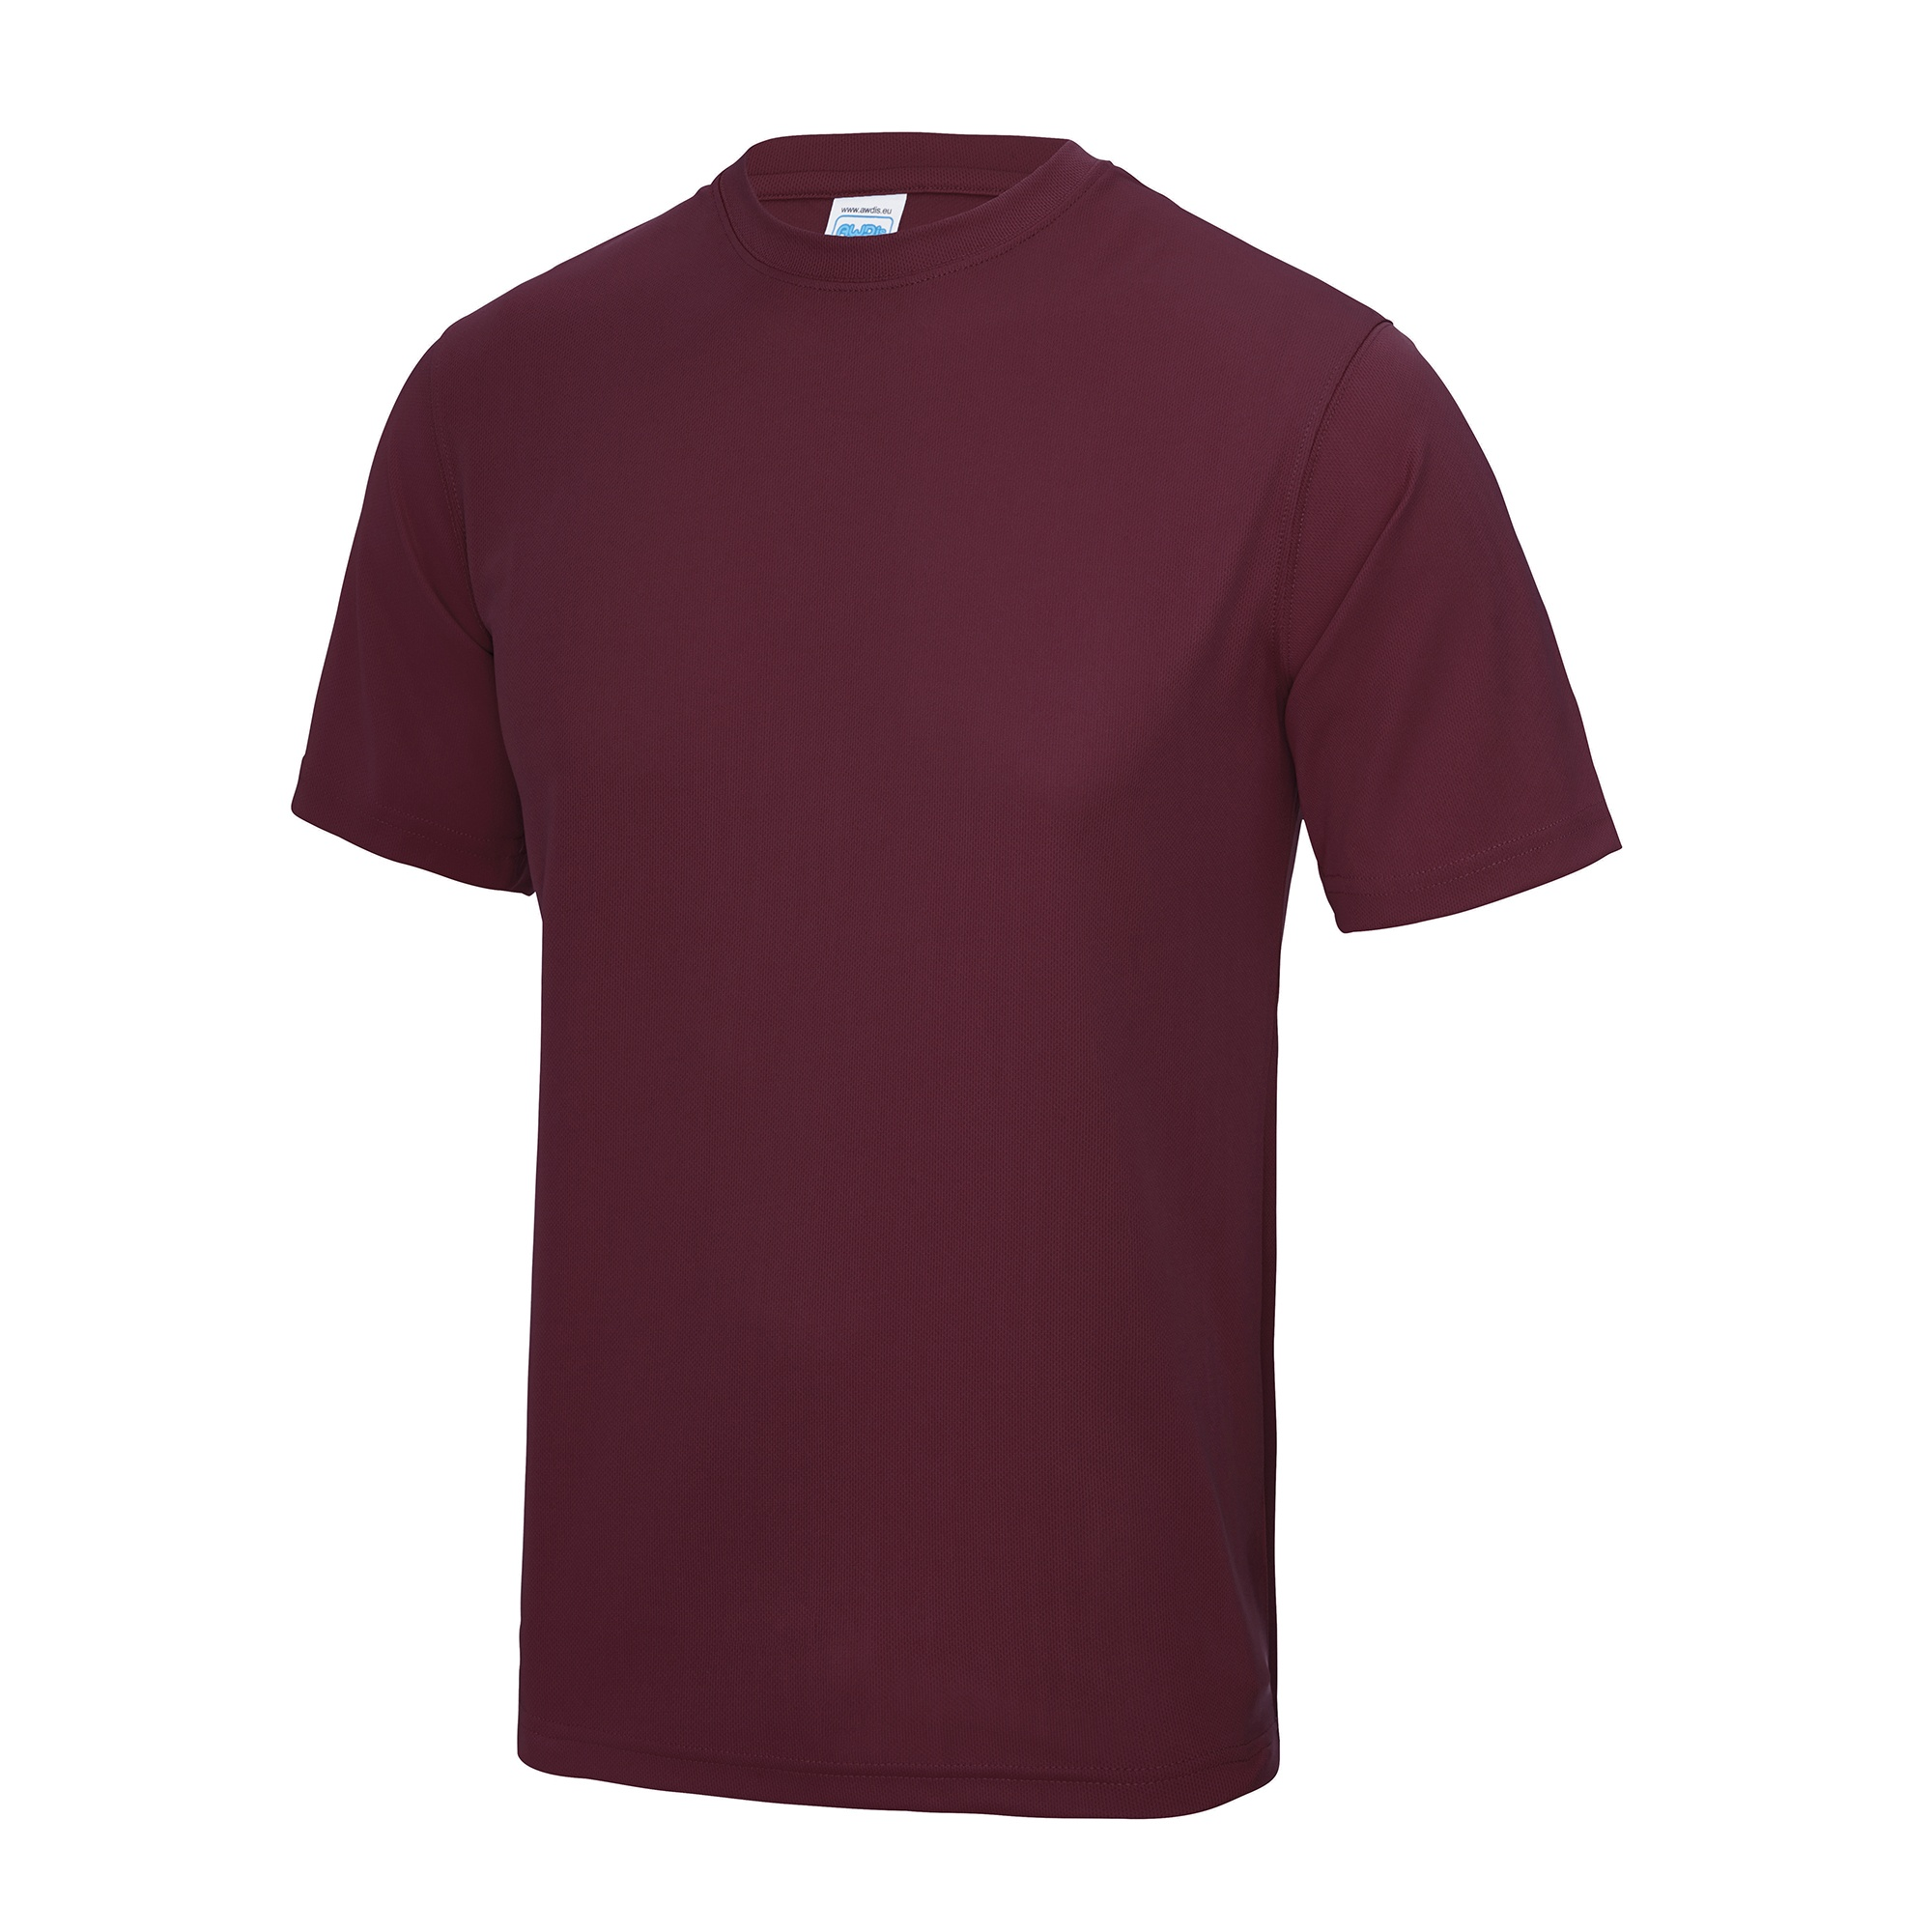 just cool mens performance plain t shirt ebay